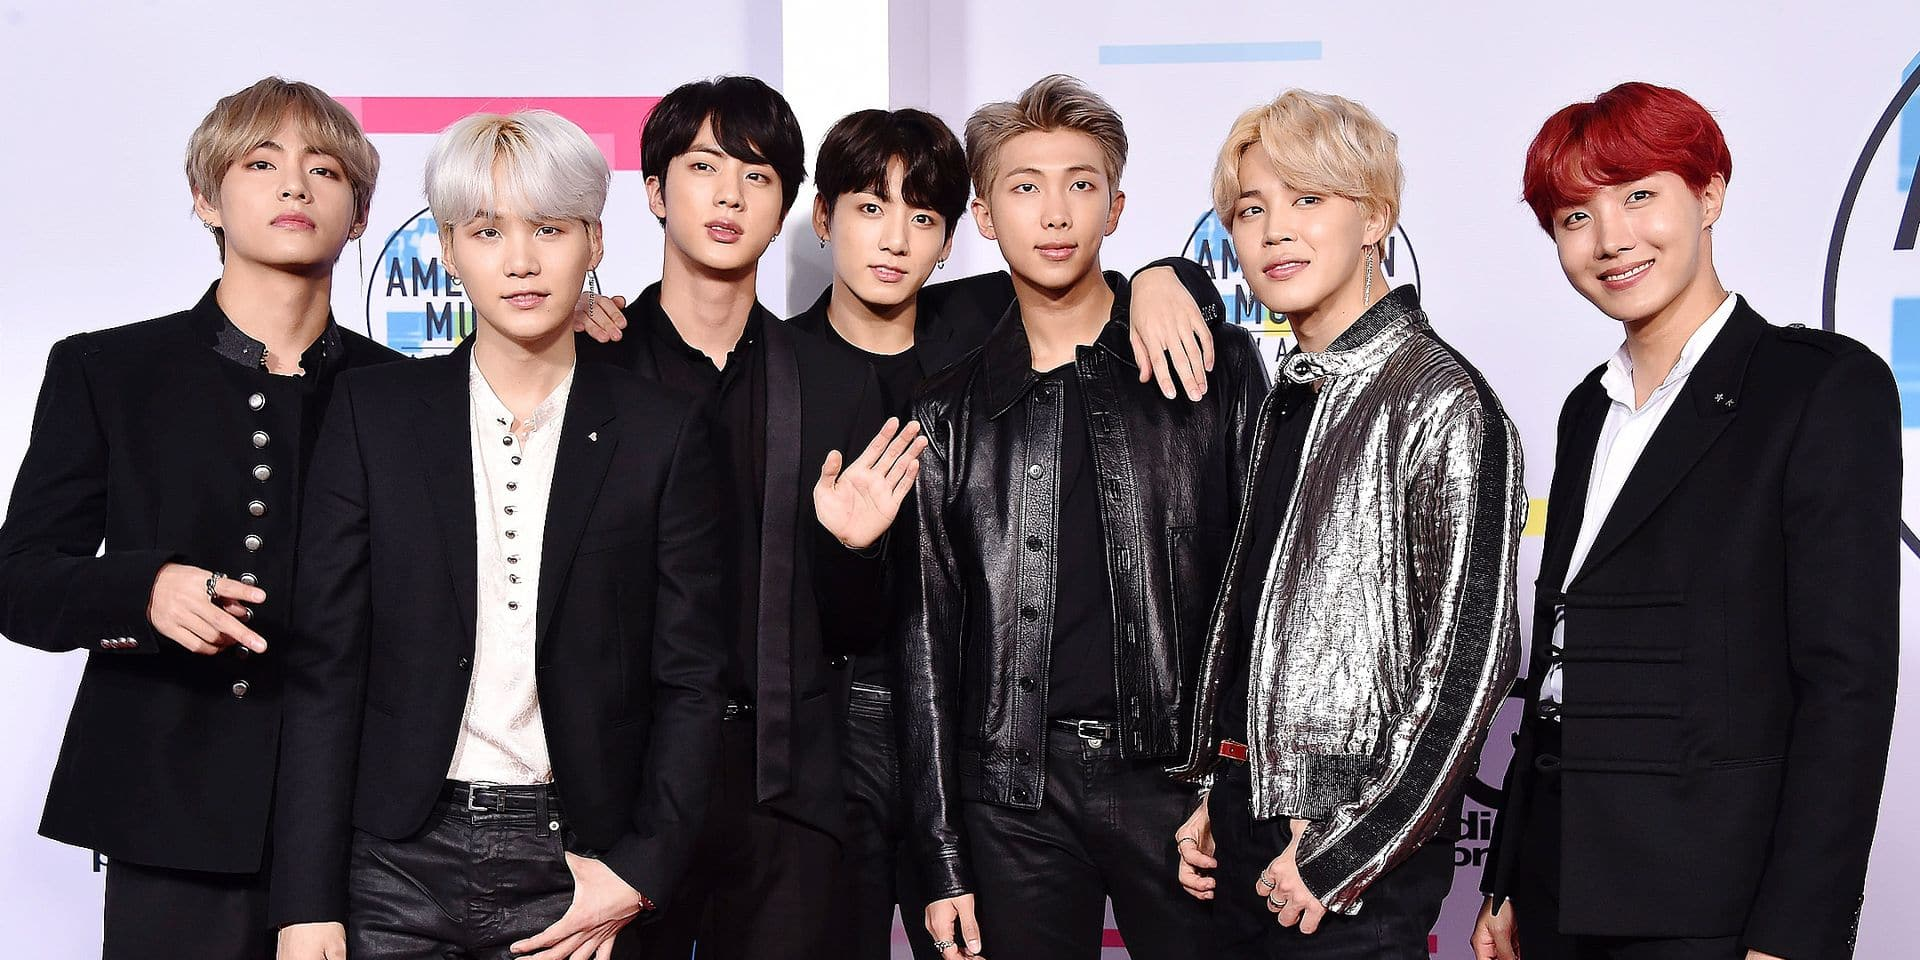 American Music Awards 2017 - Arrivals. BTS at the 2017 American Music Awards held at the Microsoft Theatre L.A. Live URN:33808324 + PHOTO NEWS / ! only BELGIUM !